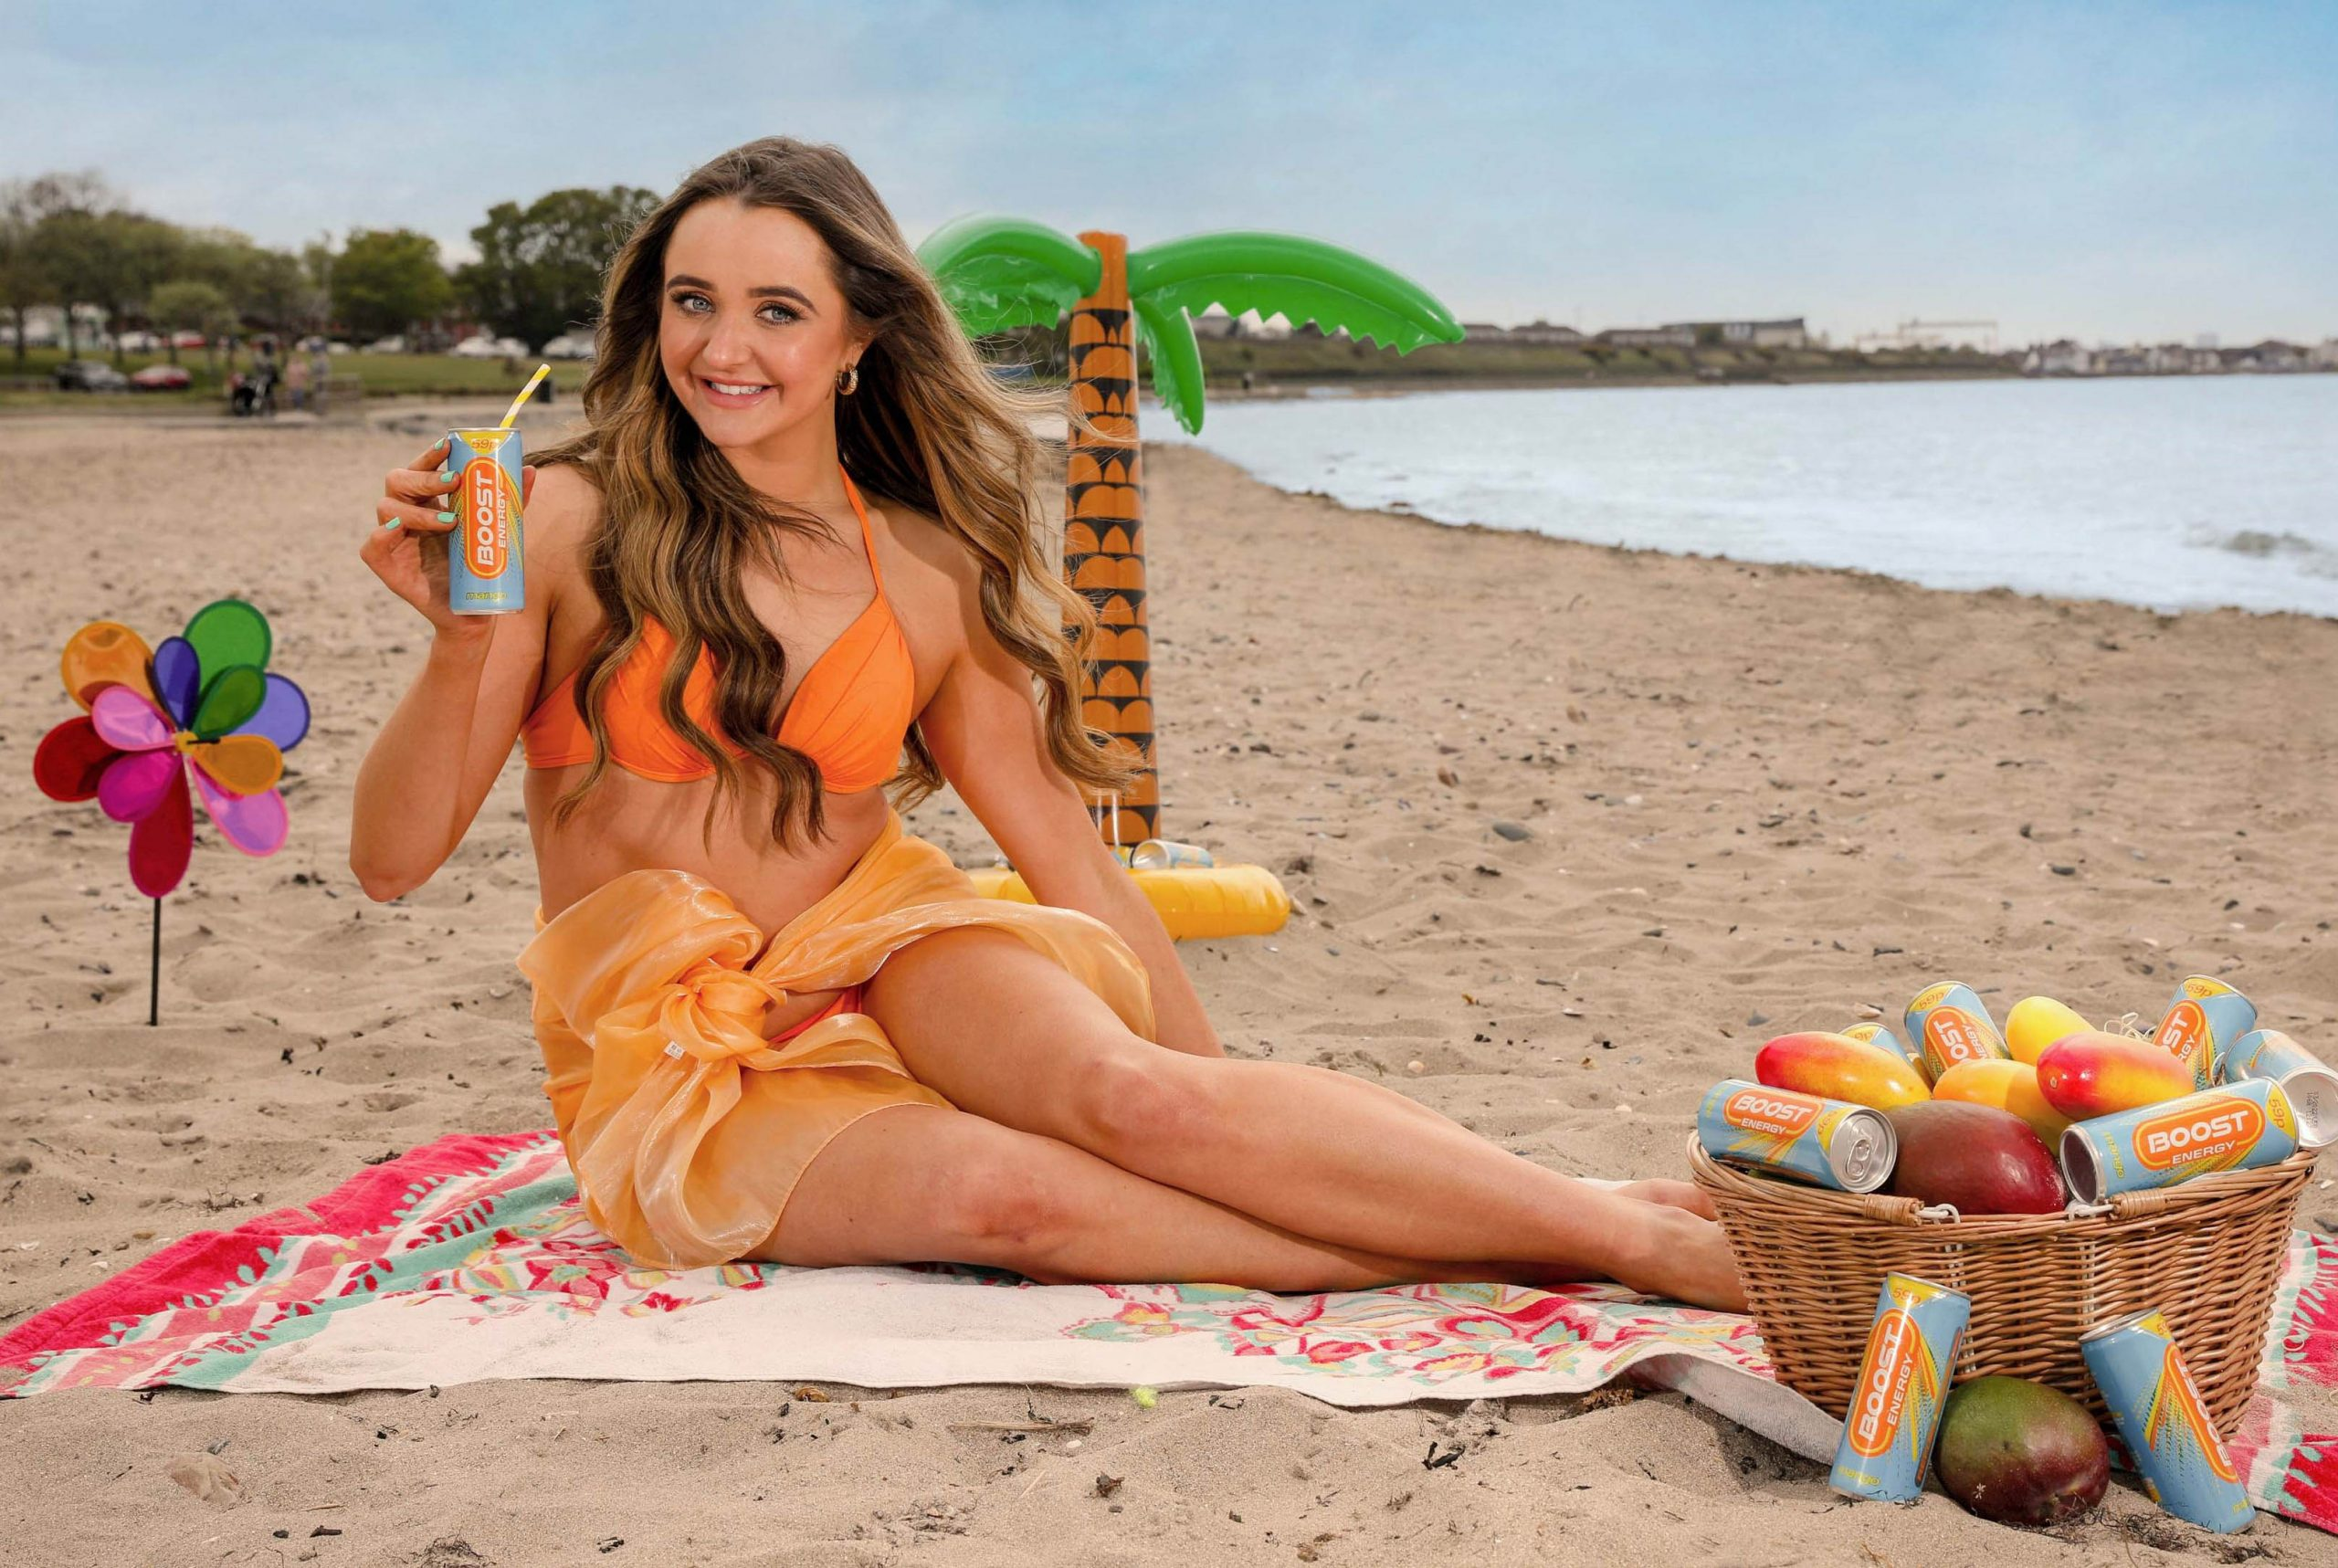 Boost society member, and Miss NI finalist, Abbie Parkinson, 24, gets a bit fruity as Boost announces the NI launch of Boost Energy Mango 250ml. As we head into the Summer period consumers are looking for that refreshing hit of flavour to lift their spirits and transport them to somewhere more exotic. Through market research, Boost Drinks found that consumers are choosing more fruity, tropical flavours with Mango being the clear winner at tickling tastebuds with a 22% year-on-year growth in consumer popularity. Boost Mango is available in independent retail stores across NI now. Picture: Philip Magowan / PressEye